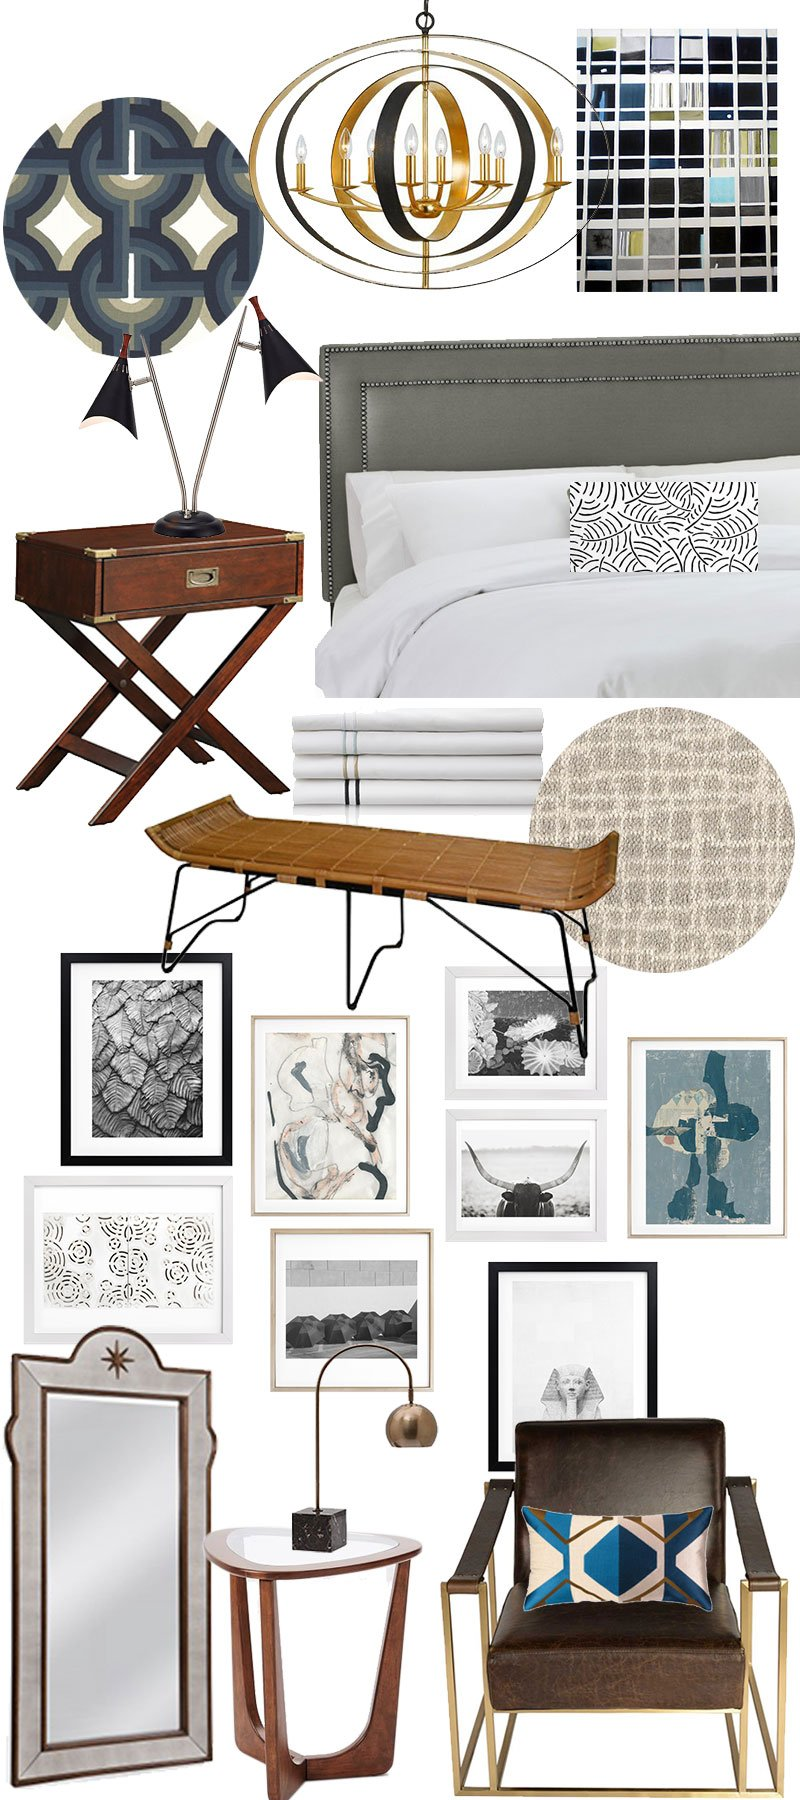 Master bedroom #OneRoomChallenge design boards on @thouswellblog